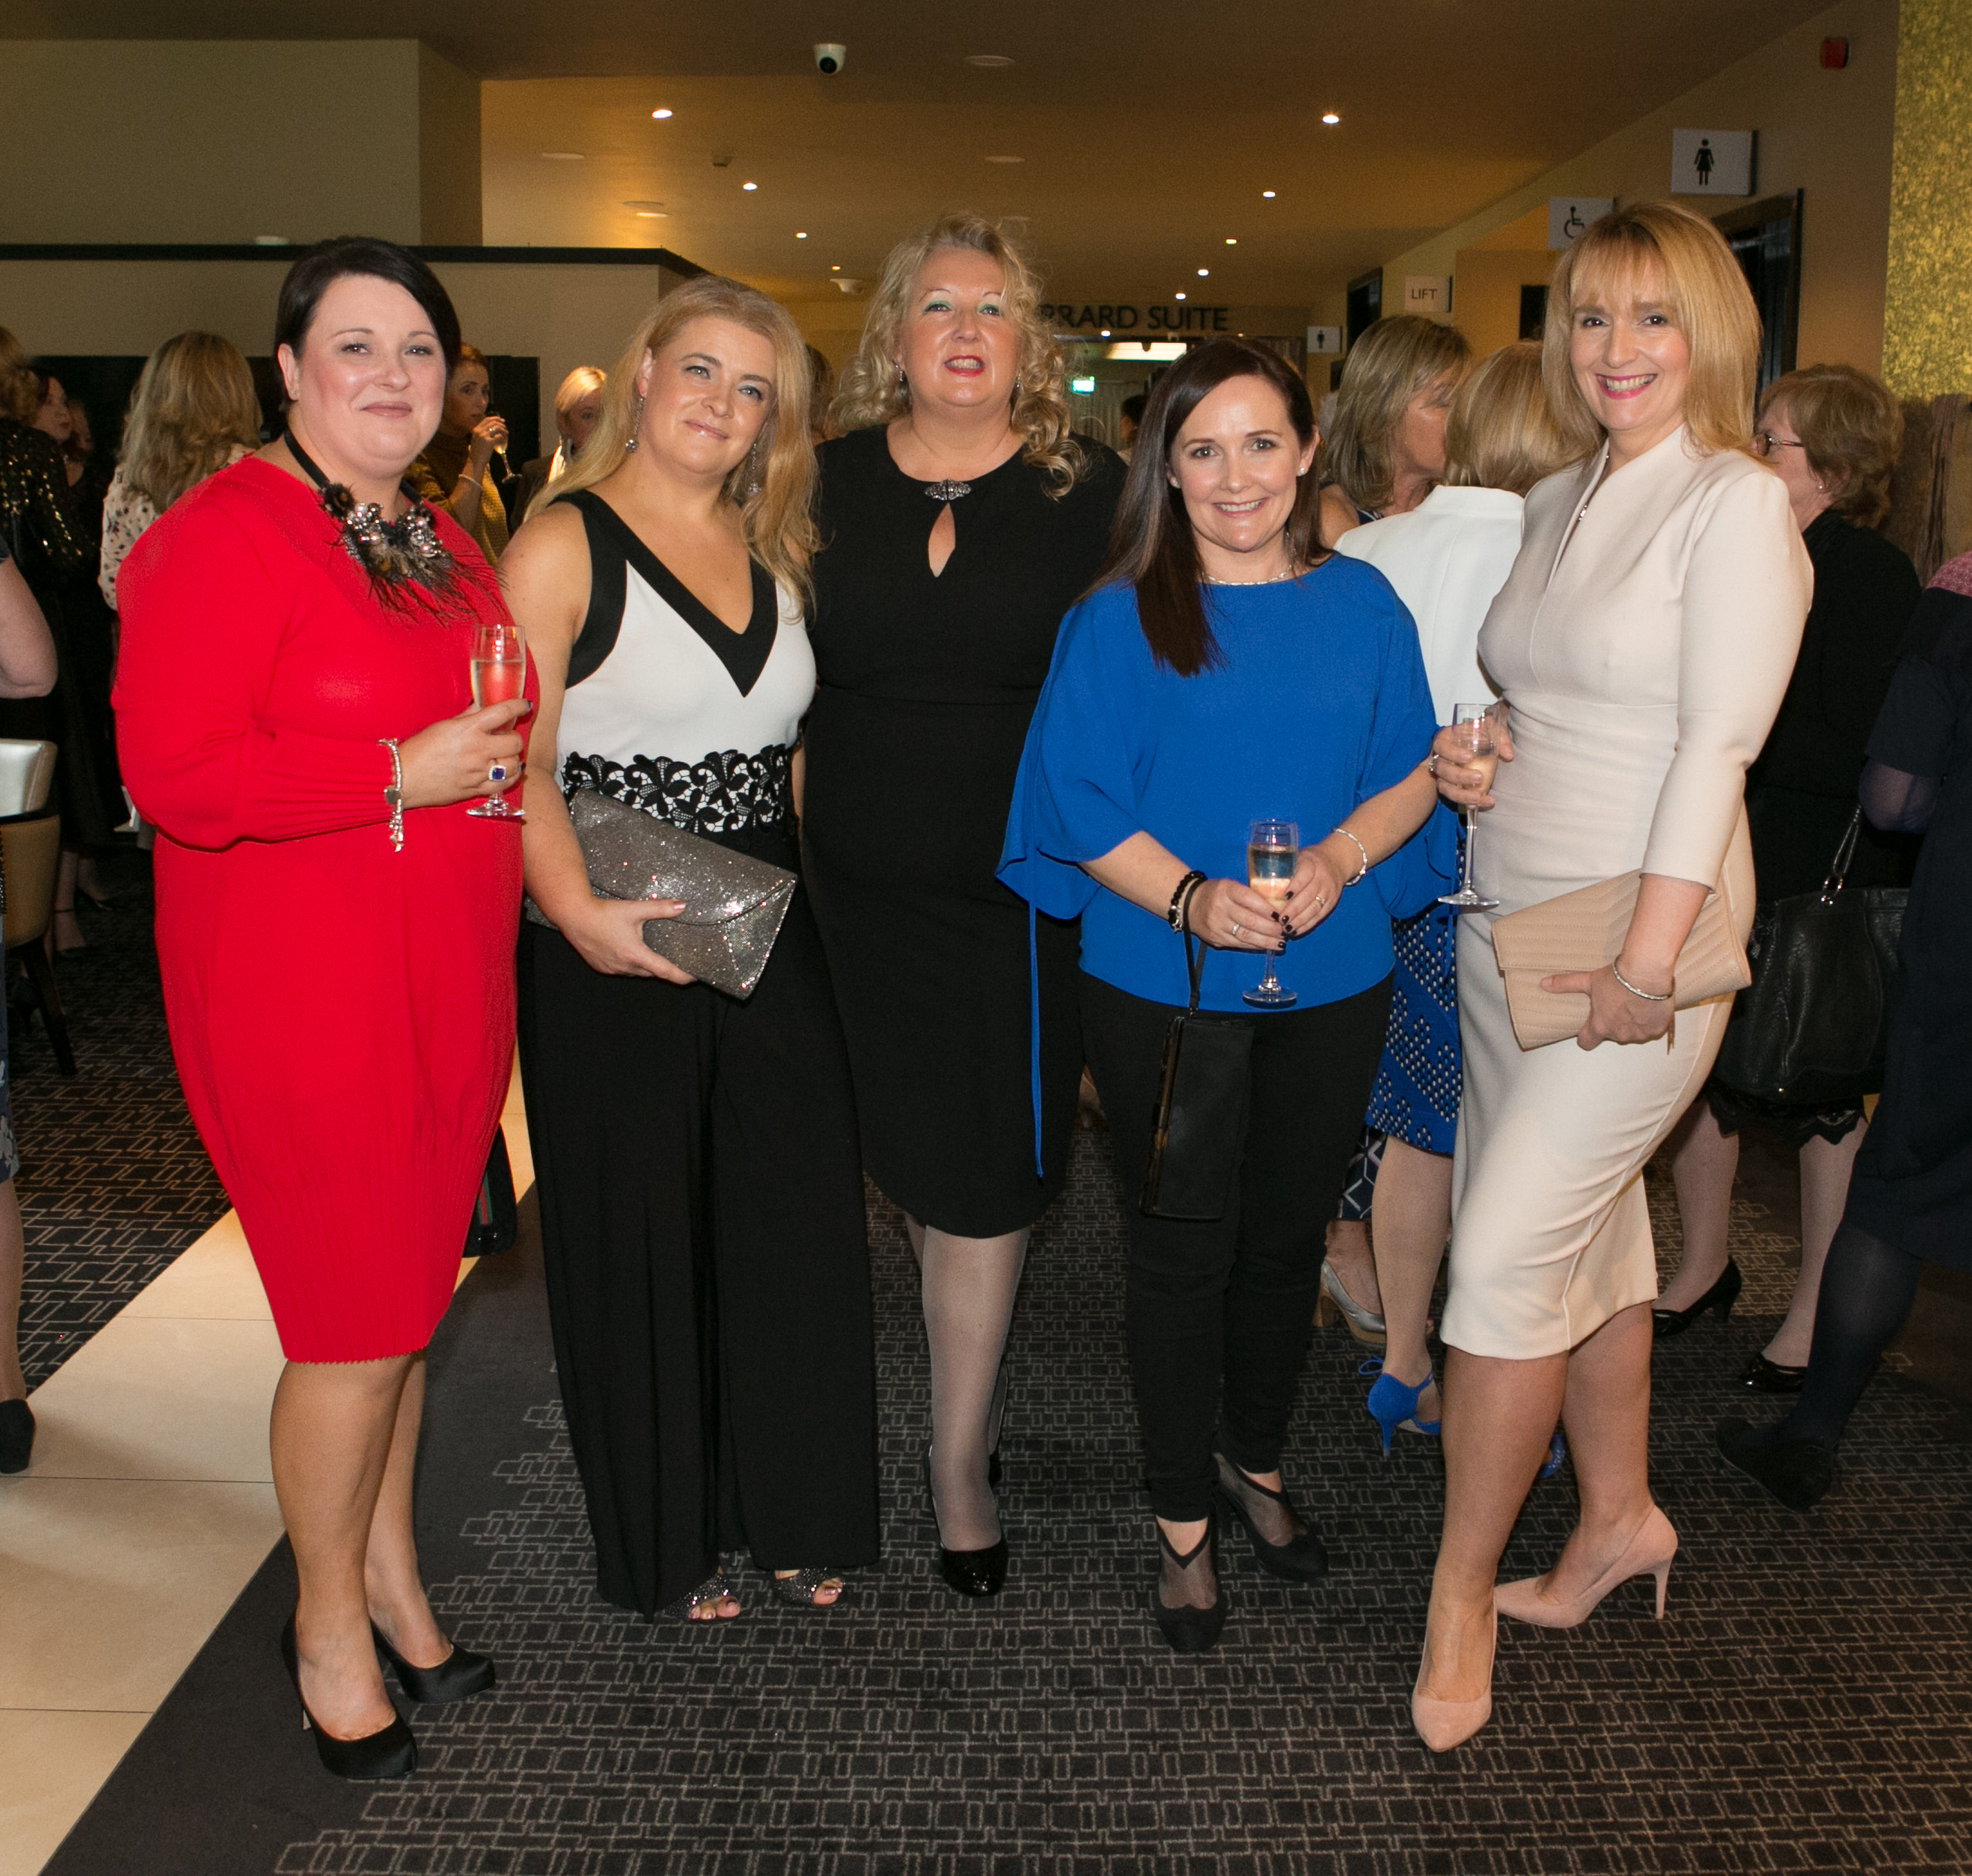 Anne Desmond, Glanmire, Jackie Coakley, Cobh, Suzanne McMahon, Cobh, Nessa Barrett, Cobh and Anne McSweeney, Mayfield at the Annual Aer Lingus Autumn Lunch in aid of Cork ARC Cancer Support House at Maryborough House.